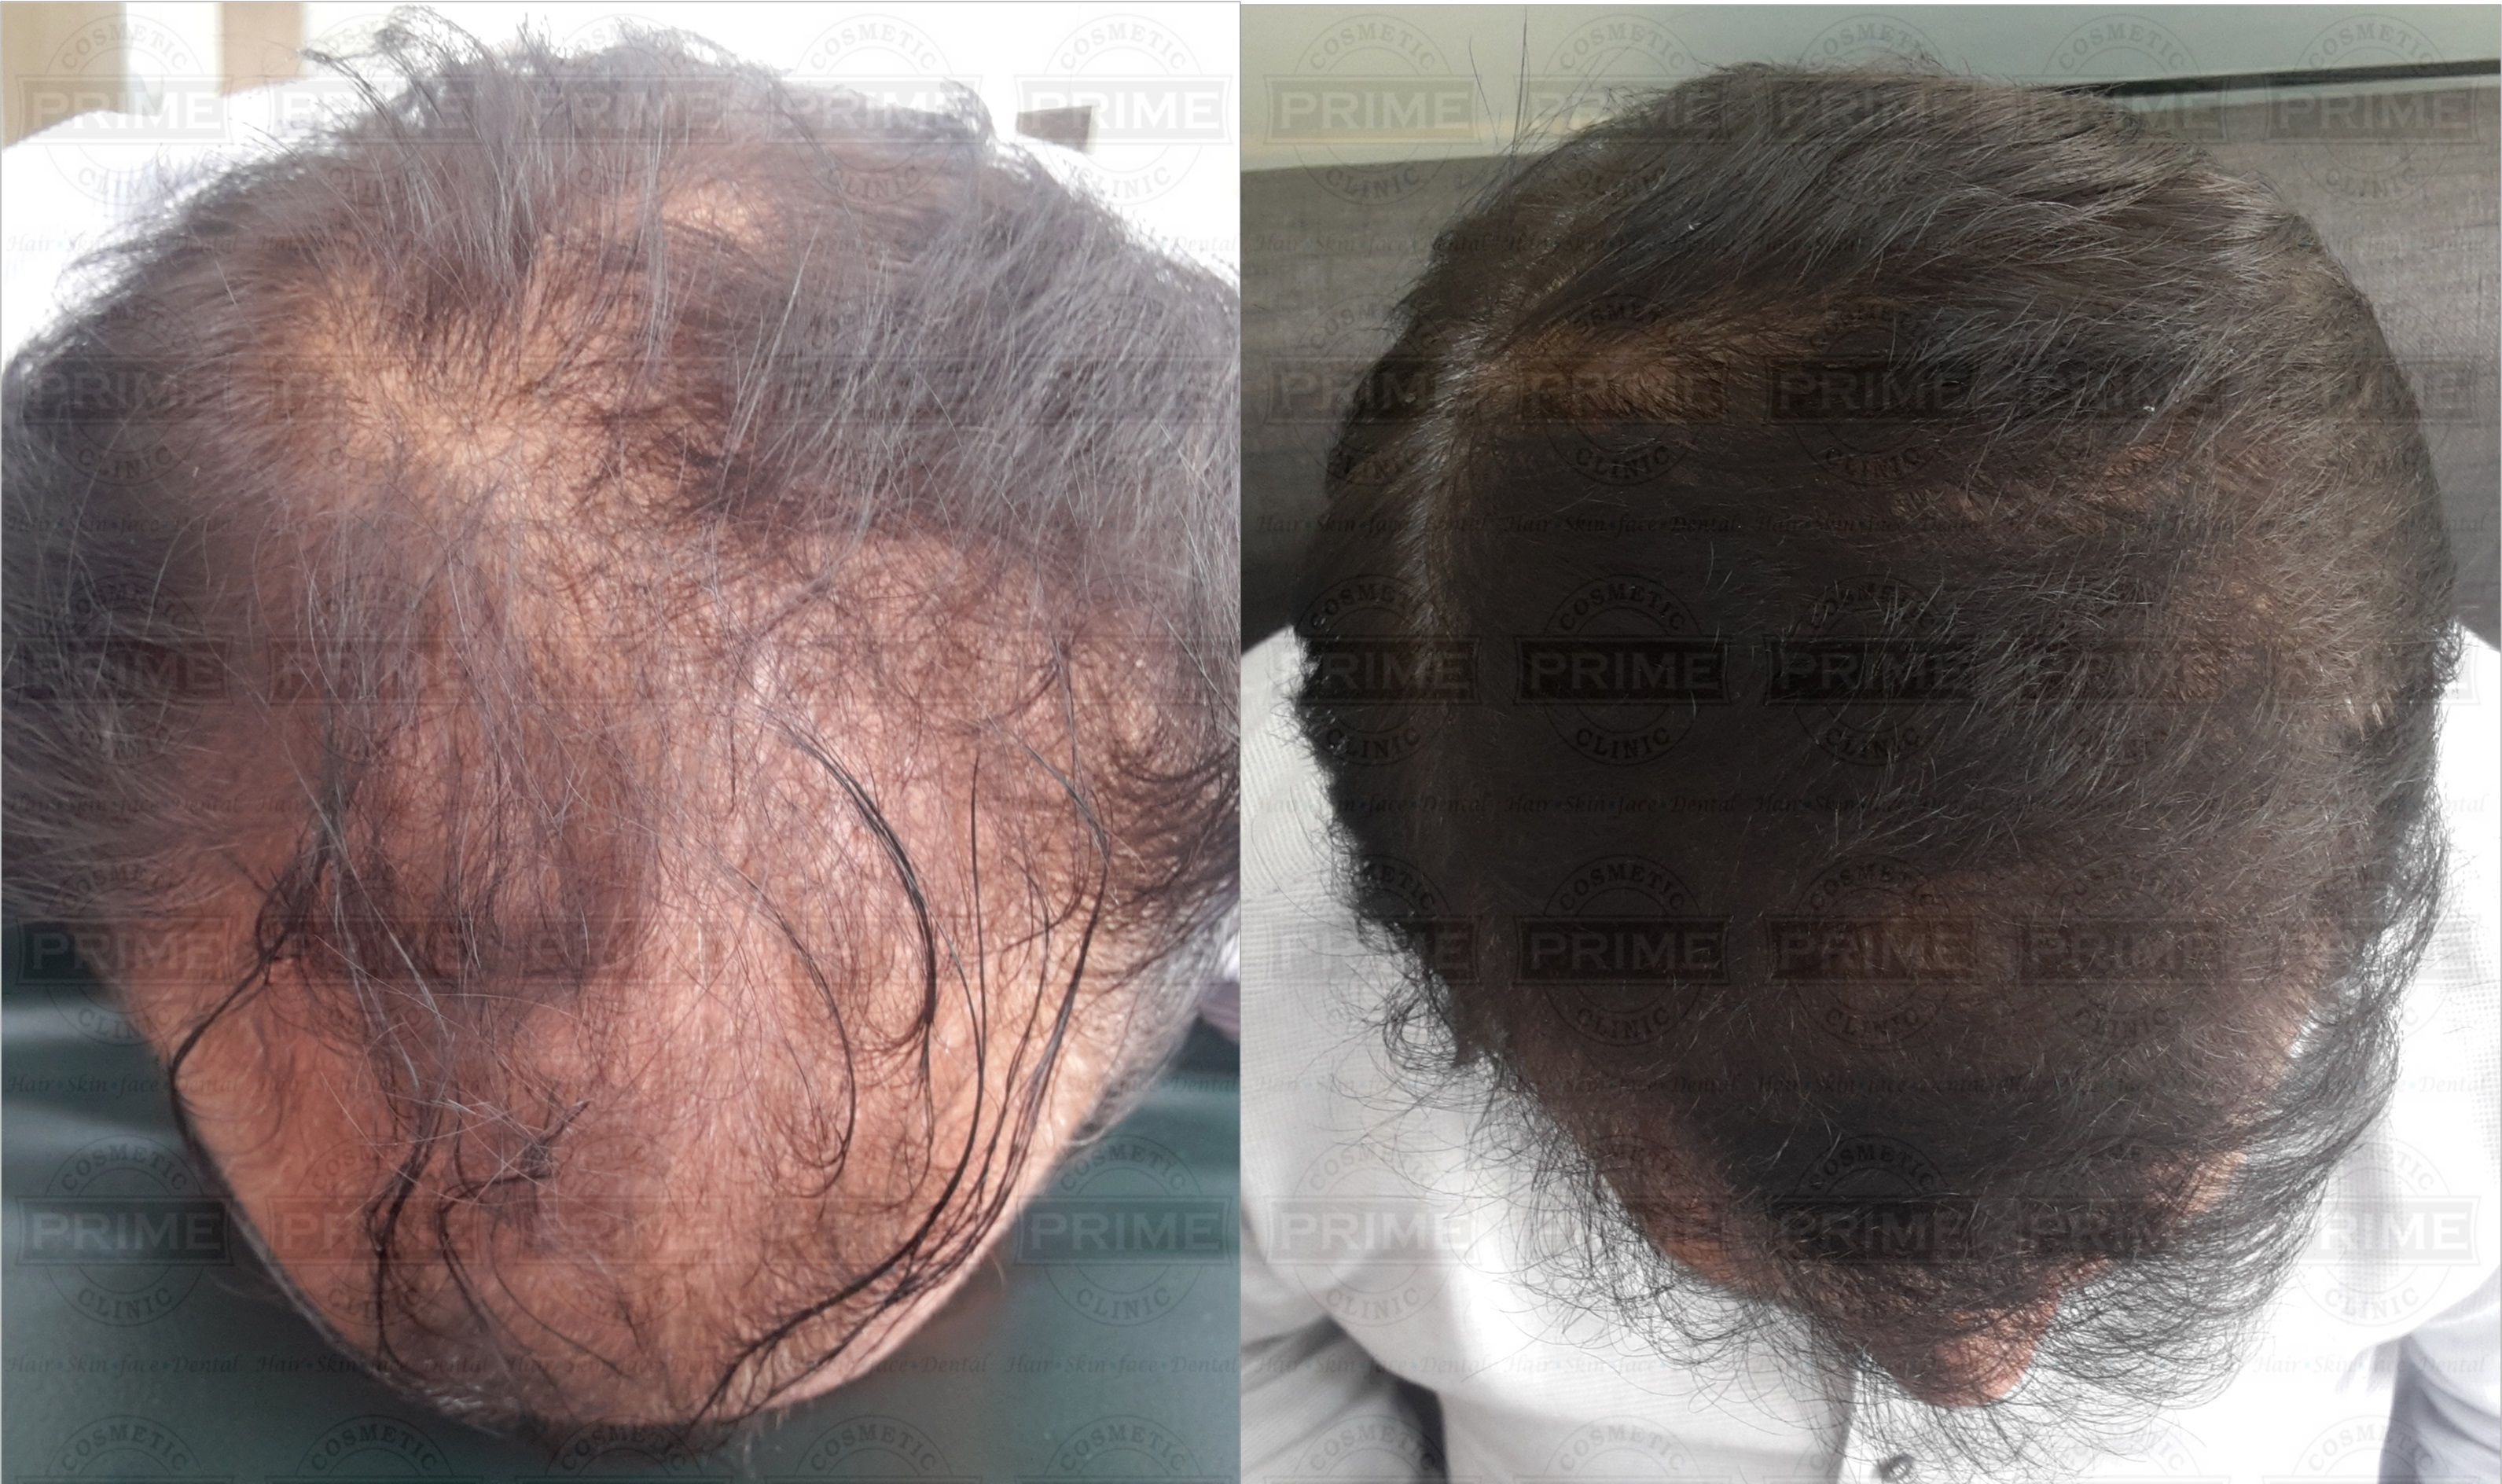 hair Transplant Cost in Mumbai India is less compared to other